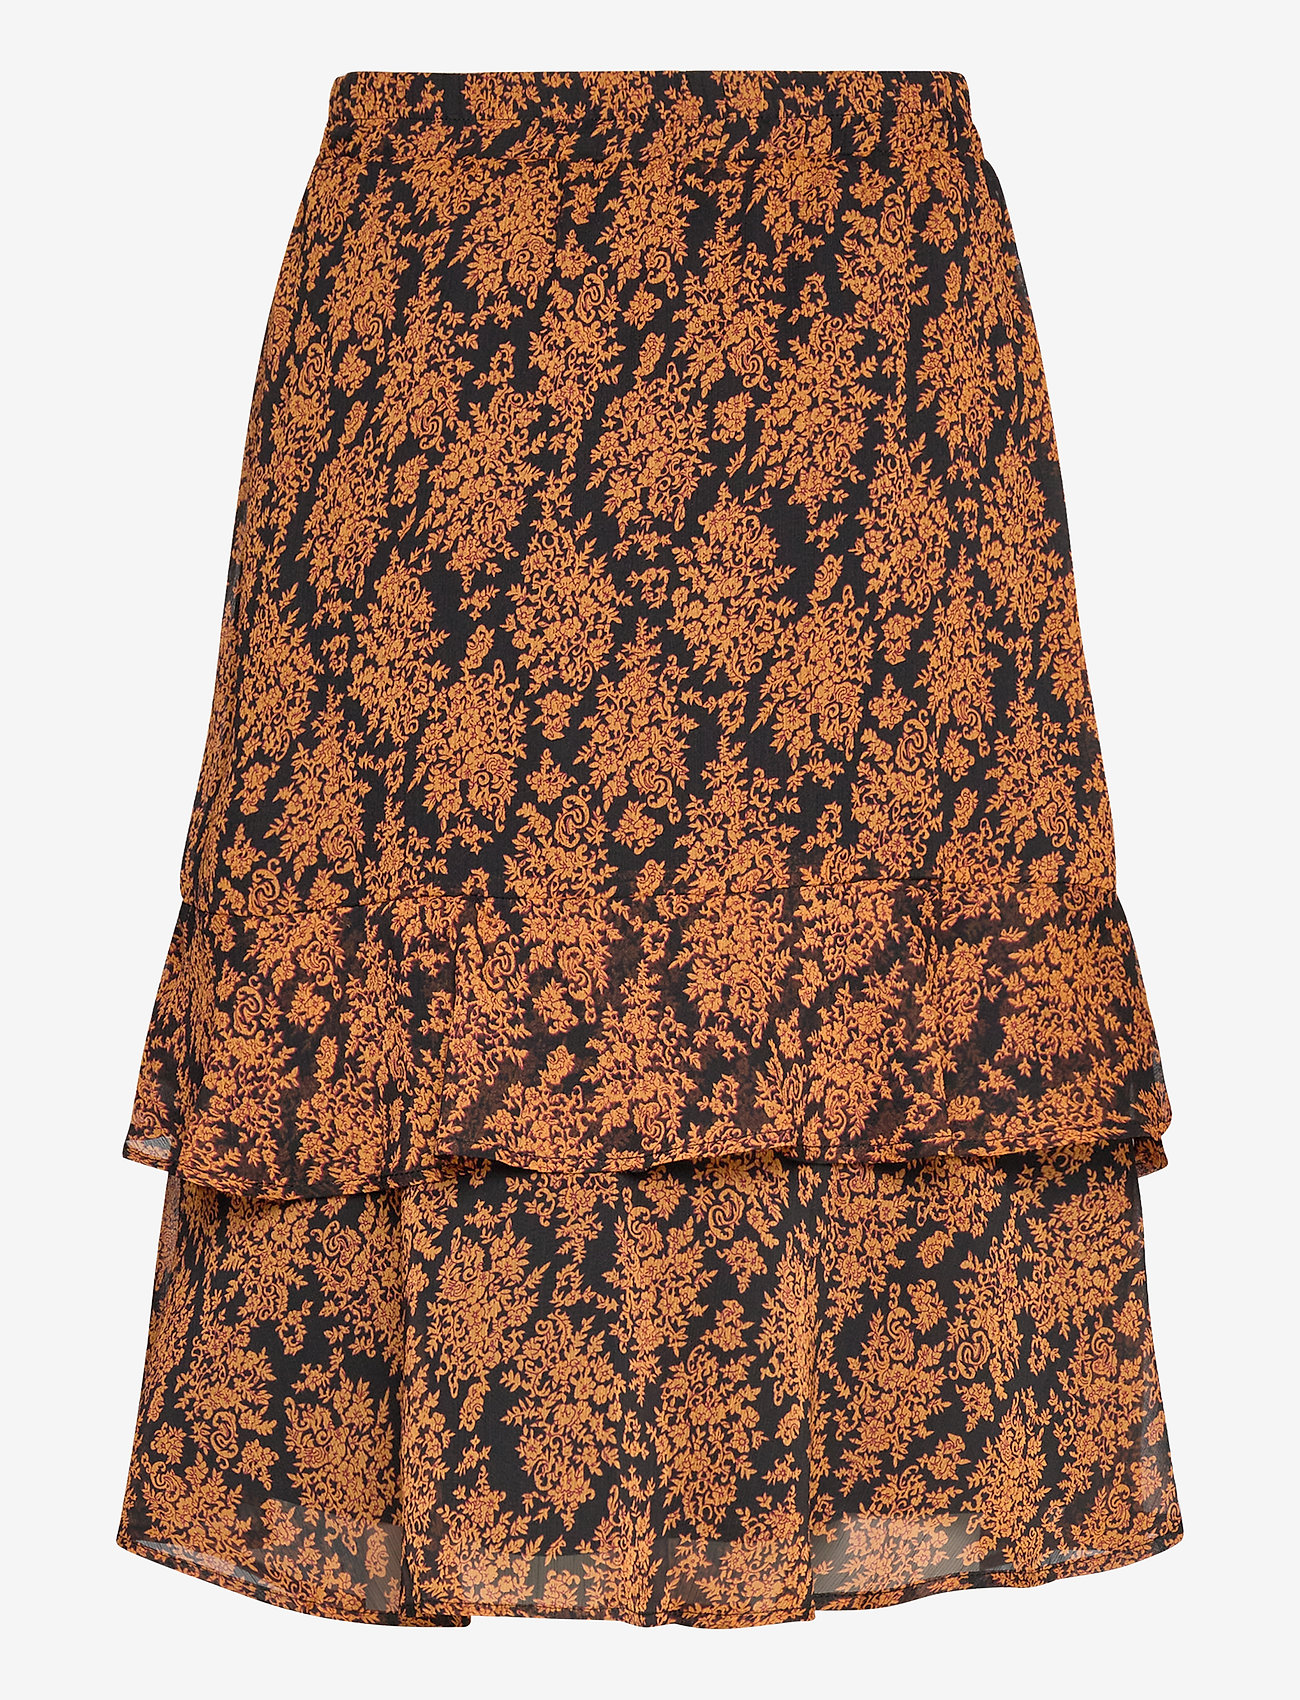 Leyla Skirt (Orange Sunset Flower Print) - Minus YQtt65